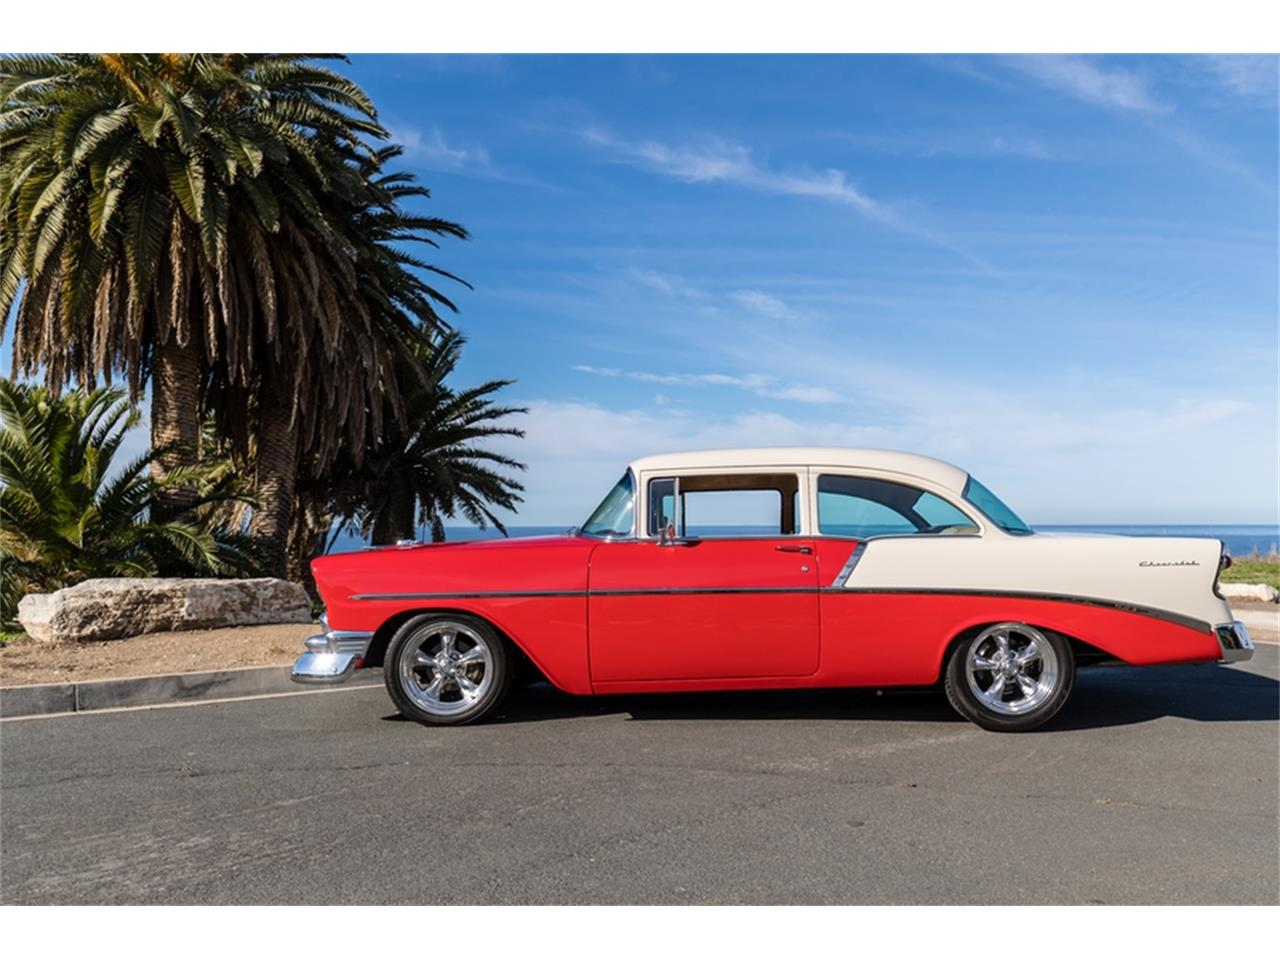 Large Picture of Classic '56 Chevrolet Bel Air located in California - $47,000.00 Offered by a Private Seller - N6LL